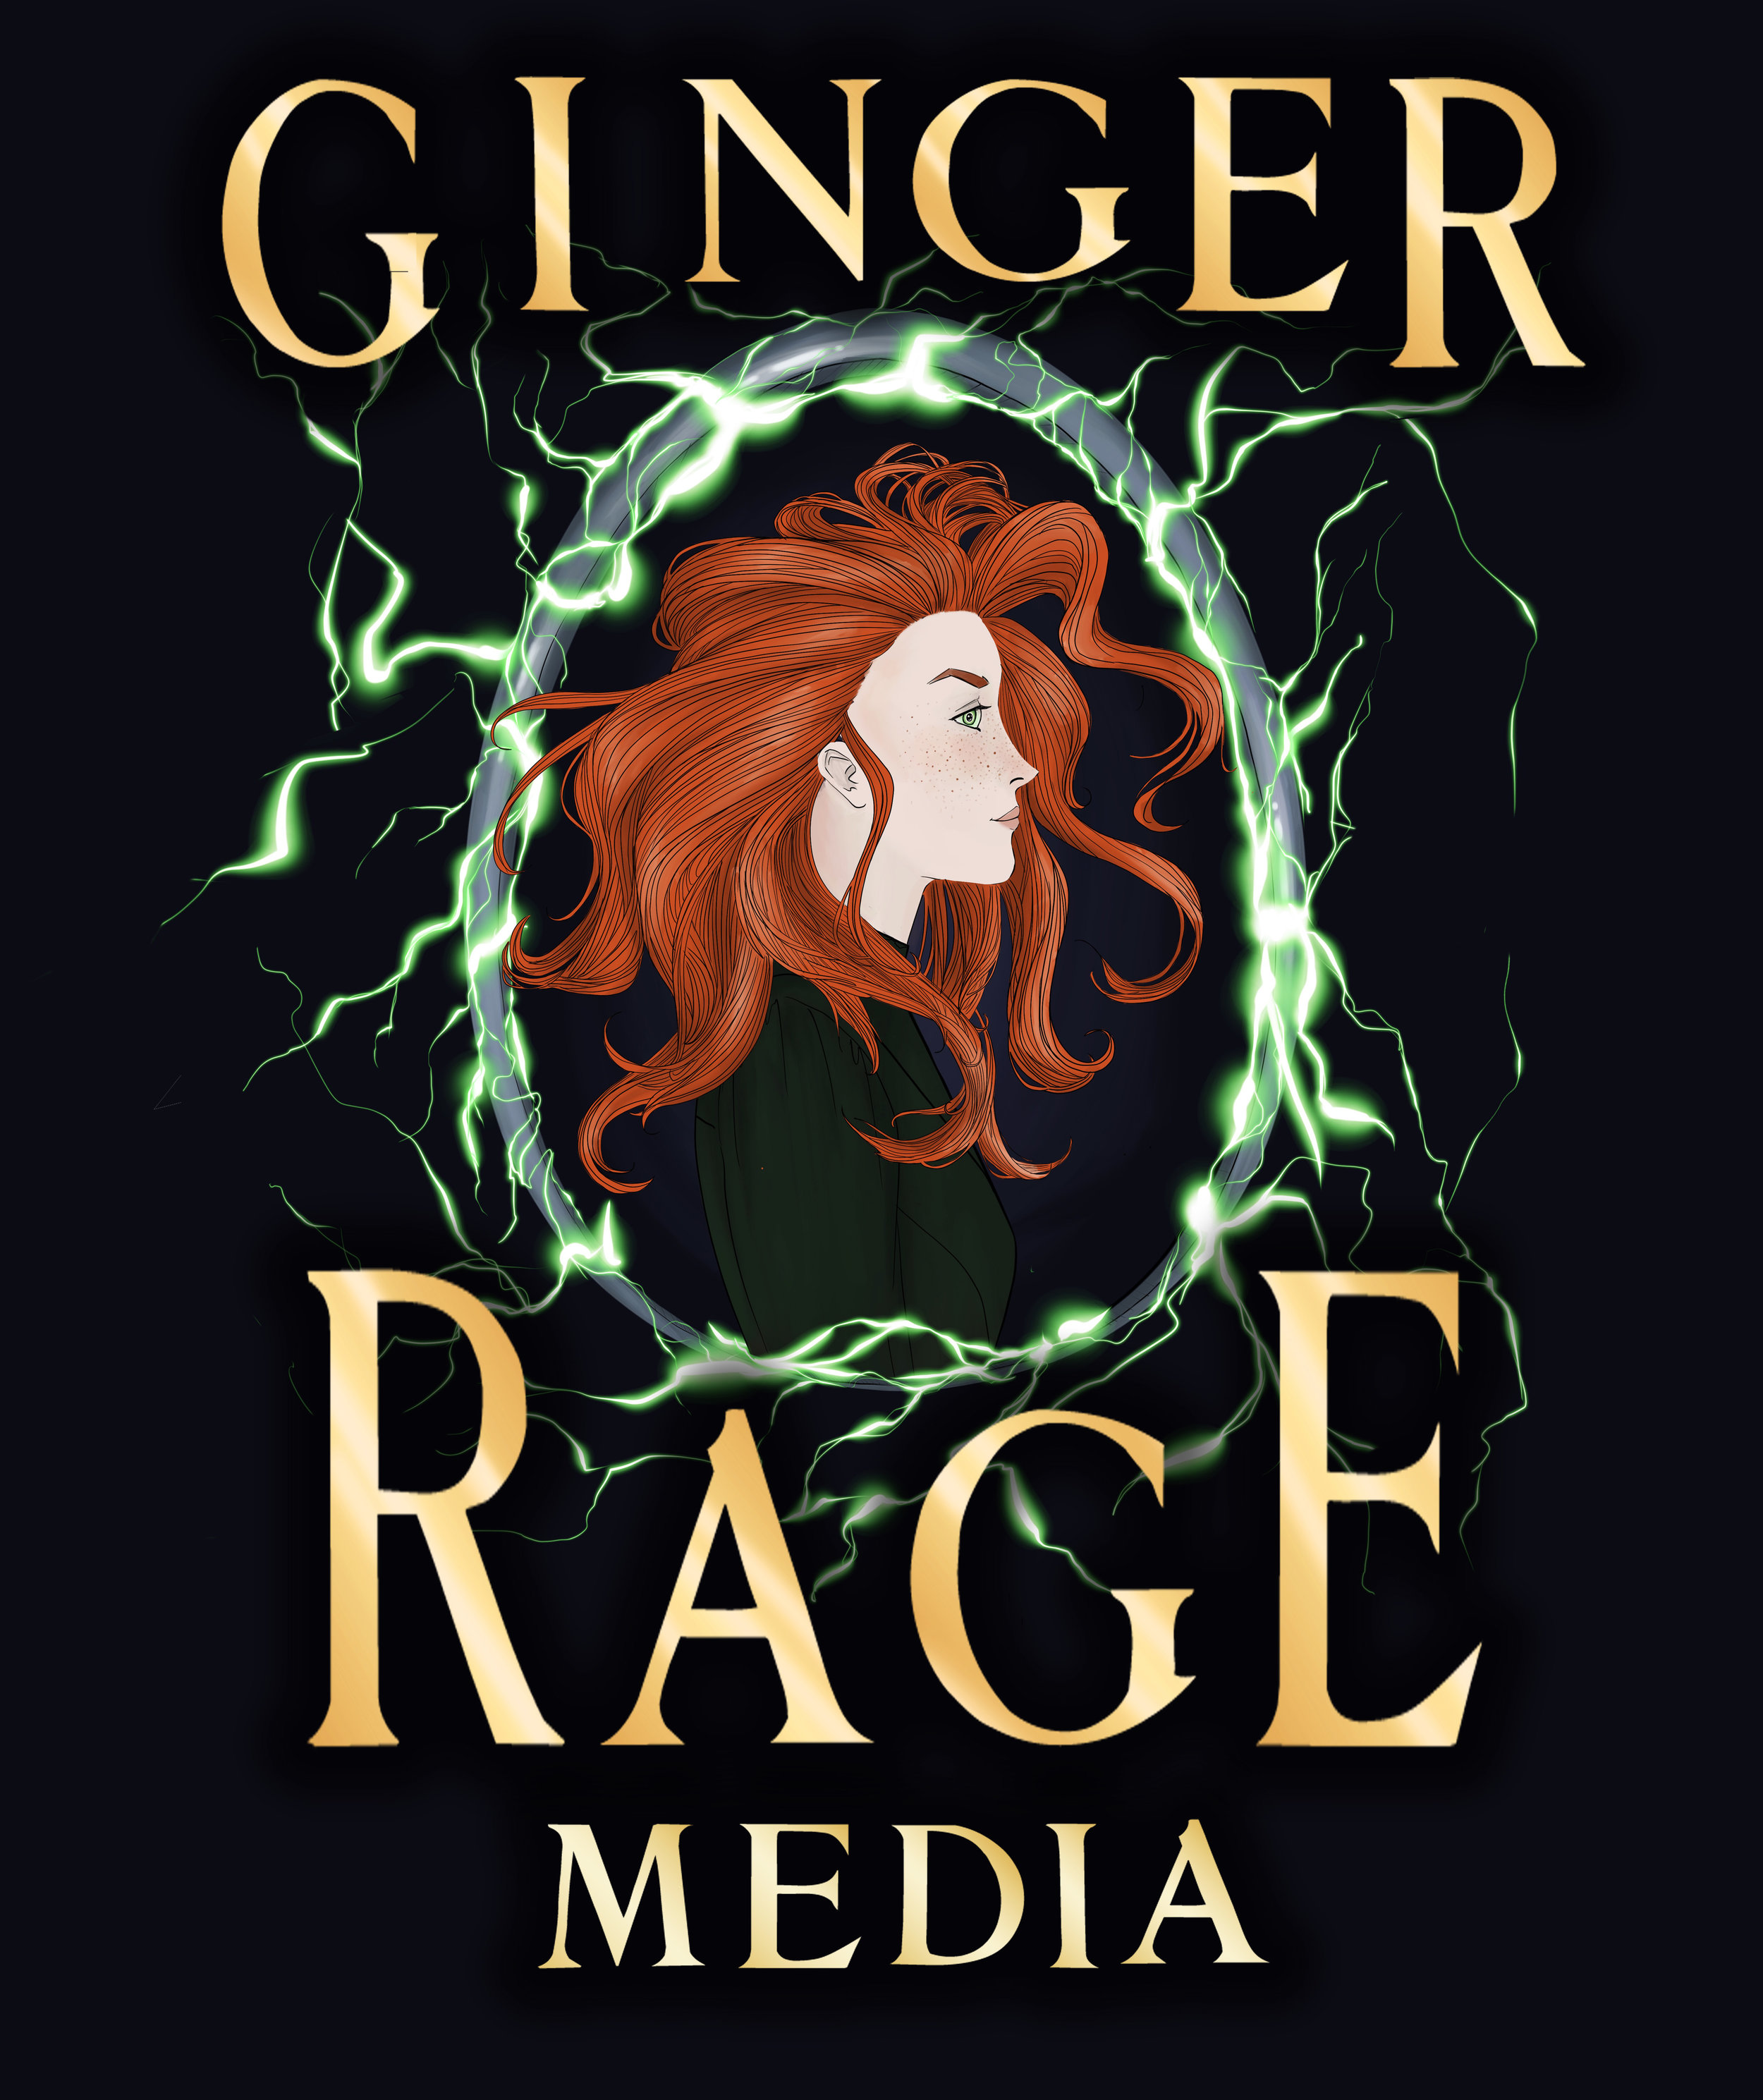 Ginger-Rage_Logo_final-4-18.jpg